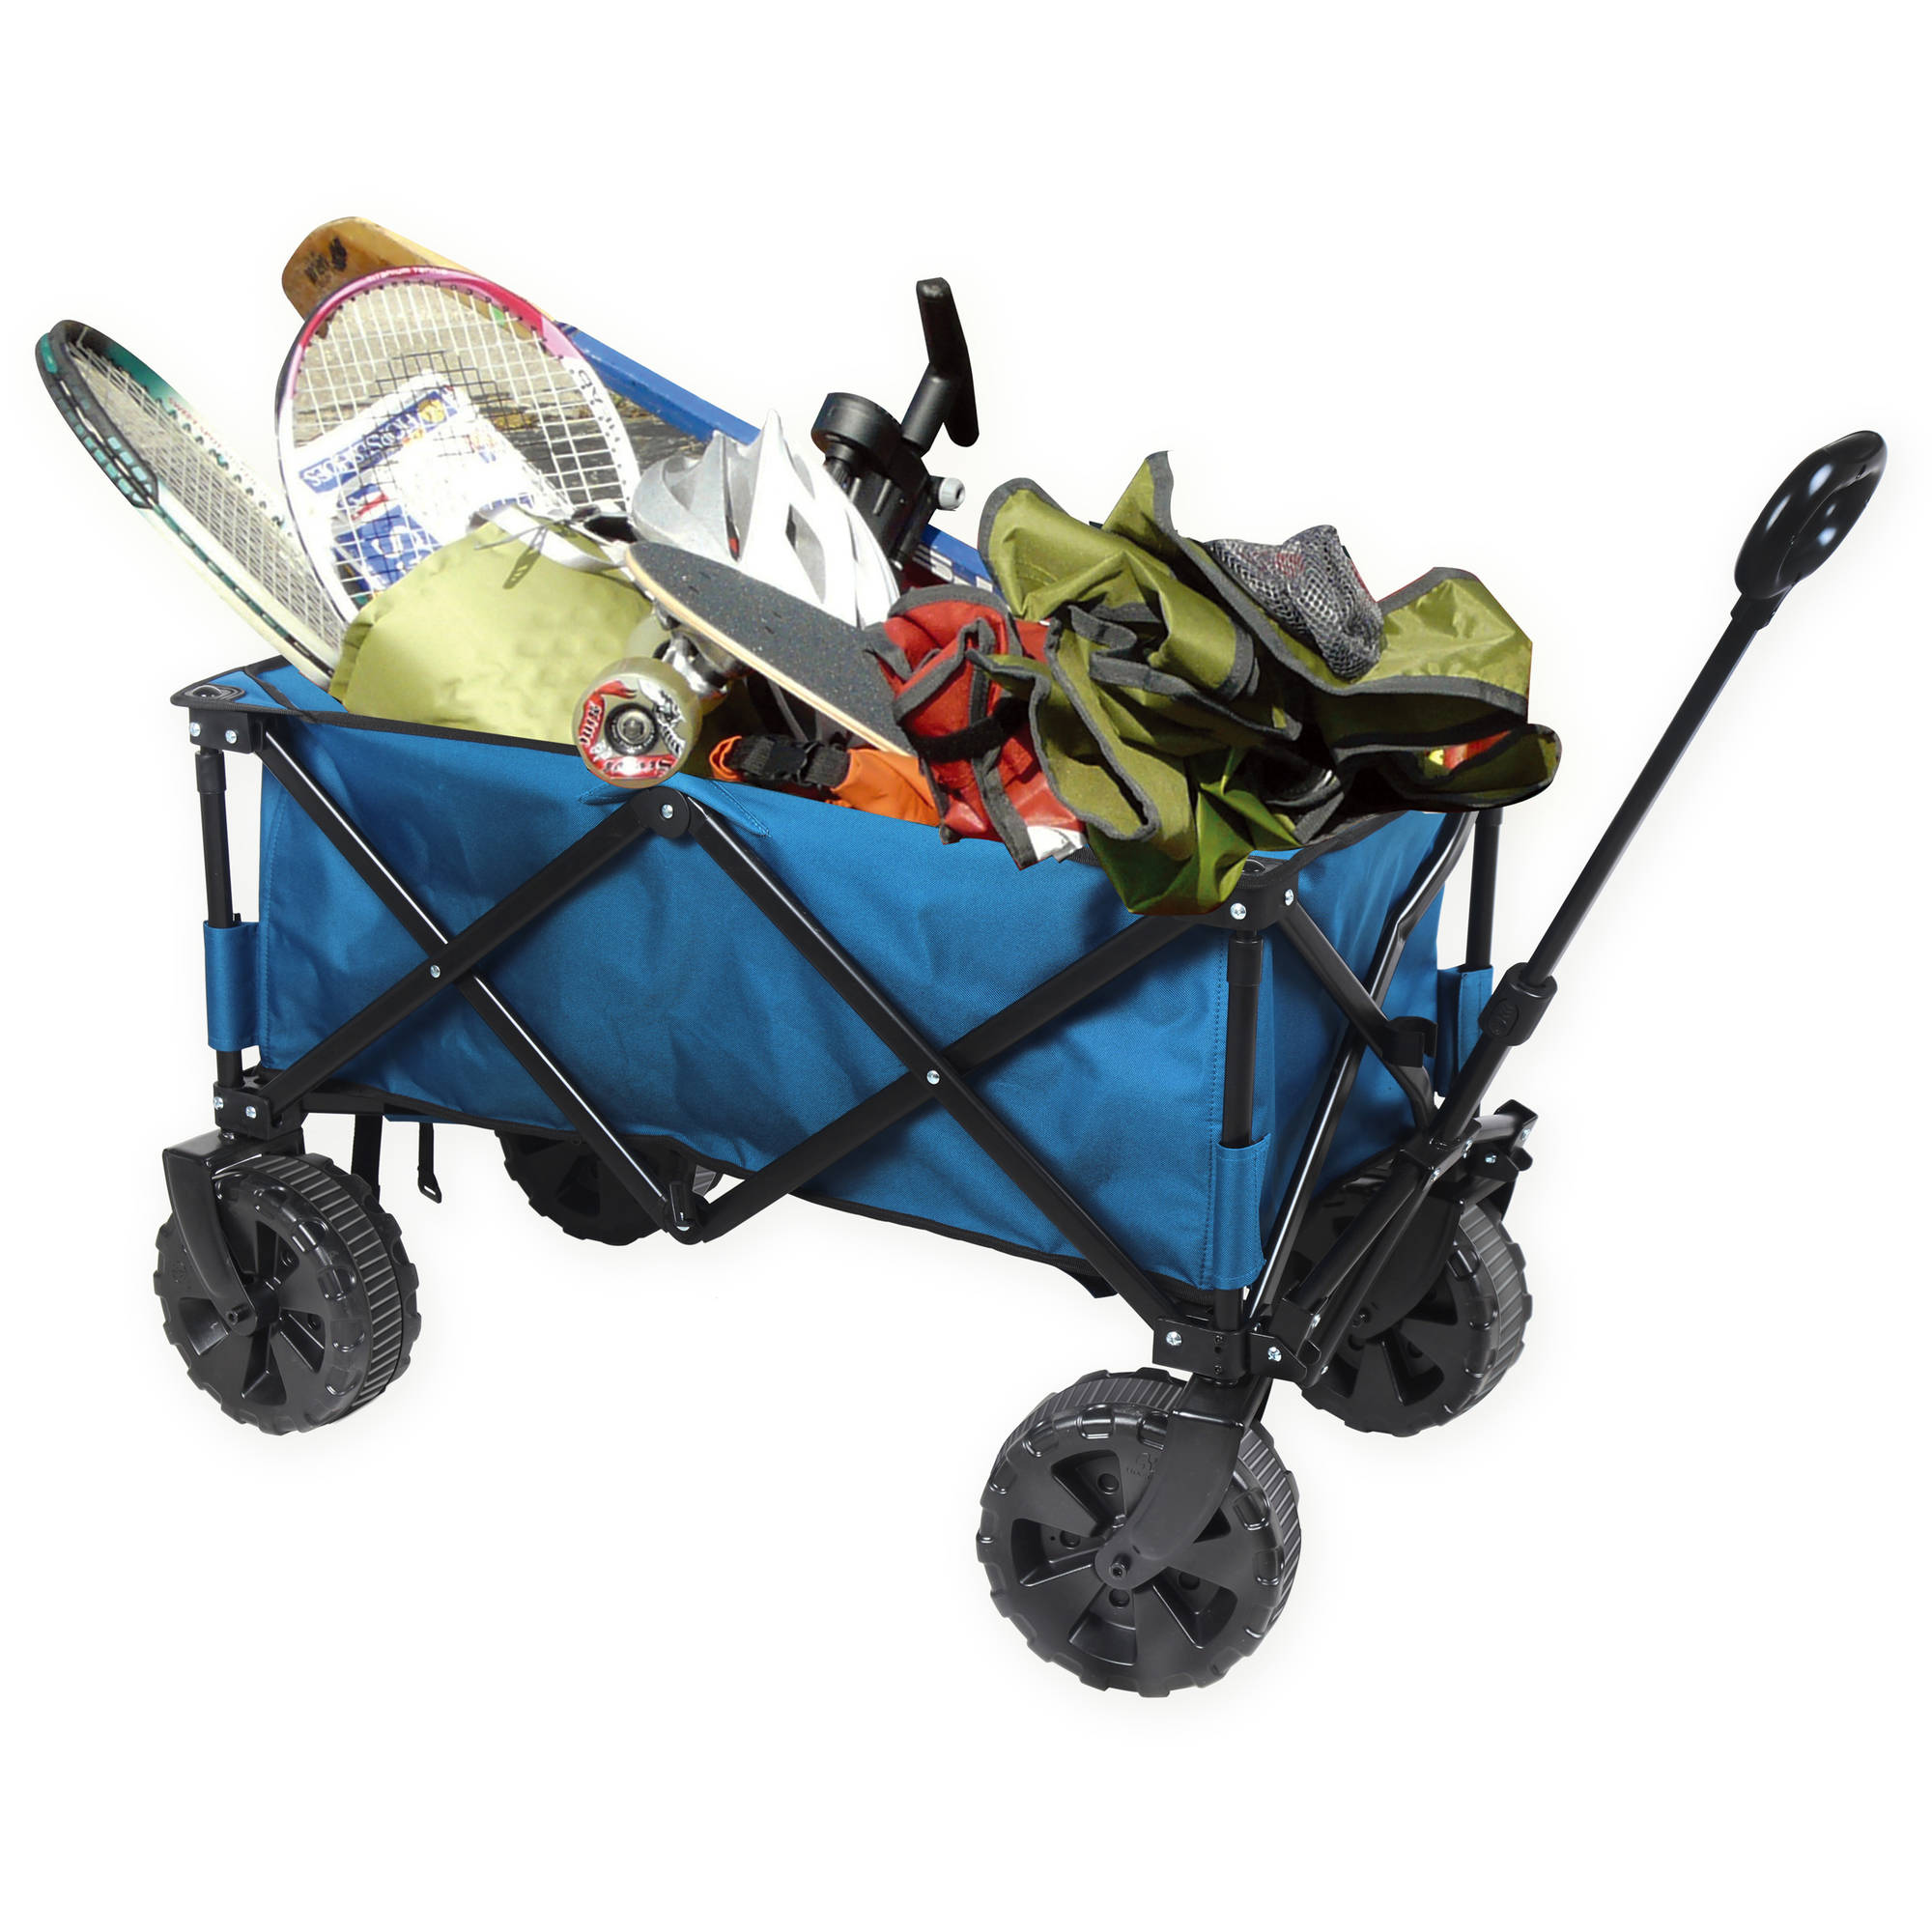 Ozark Trail All-Terrain Wagon, Blue